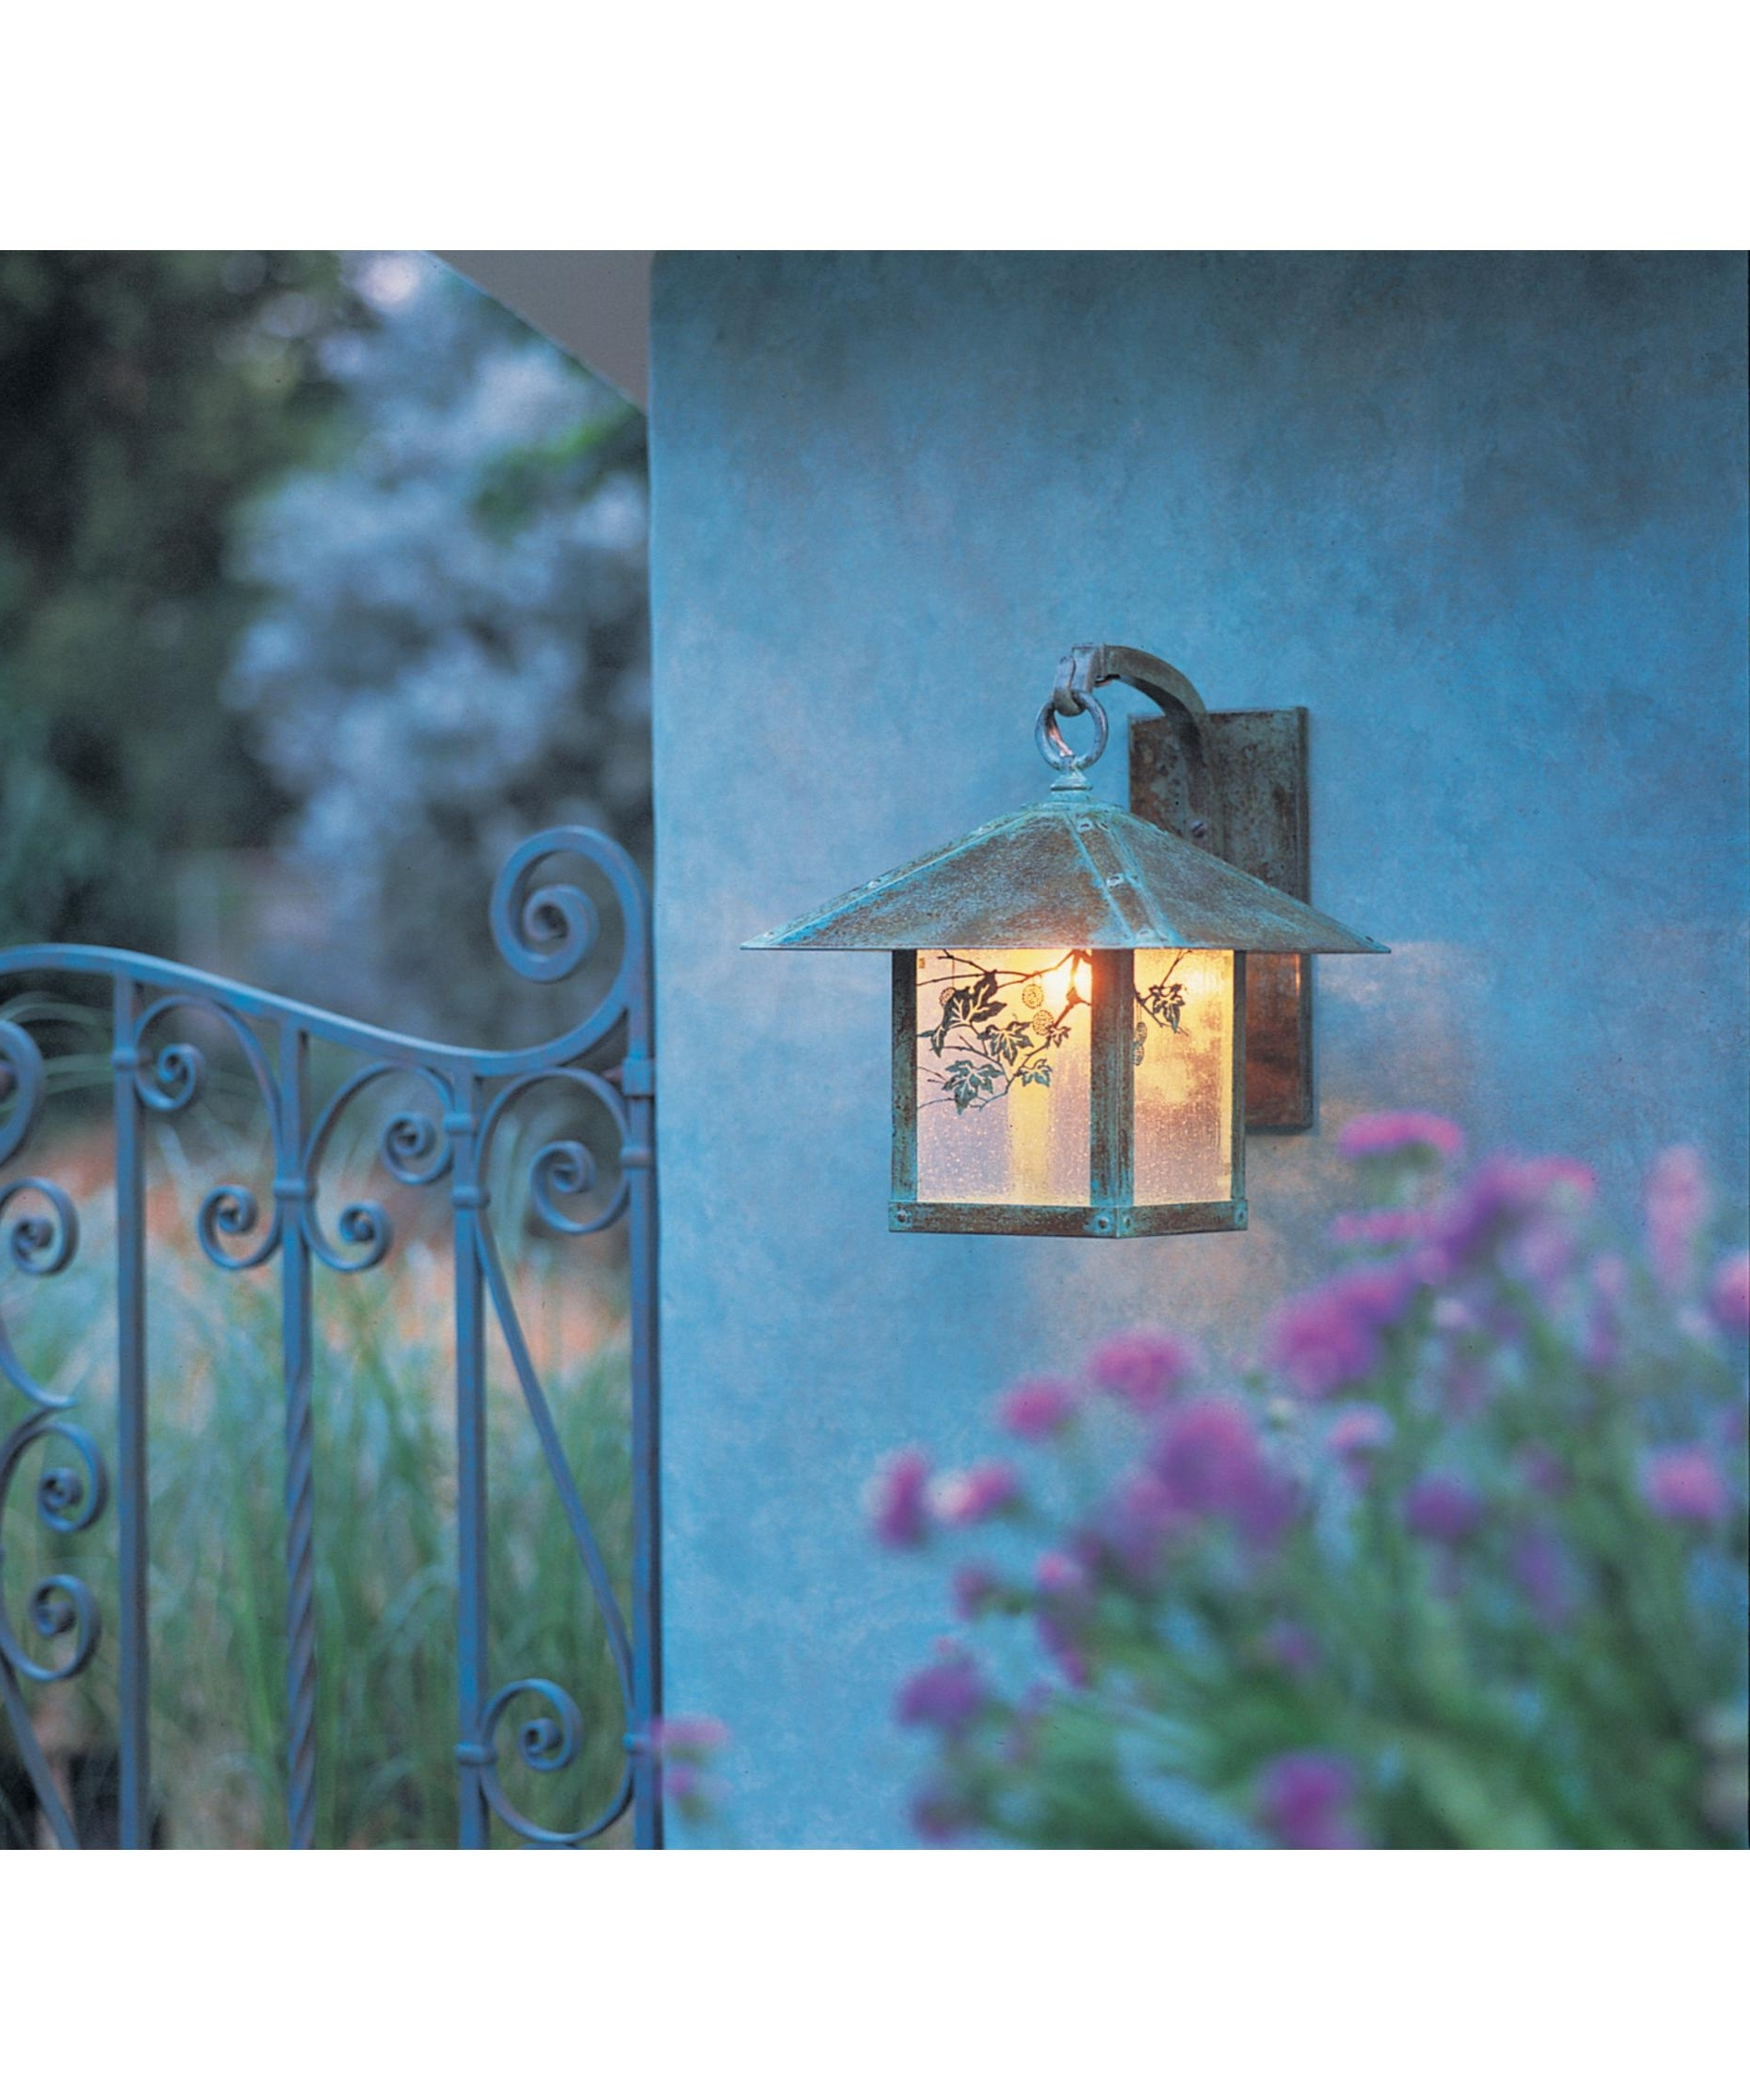 Outdoor And Patio: Outdoor Wall Accent Lighting With Artsitic Floral Throughout Well Known Outdoor Wall Accent Lighting (View 12 of 20)